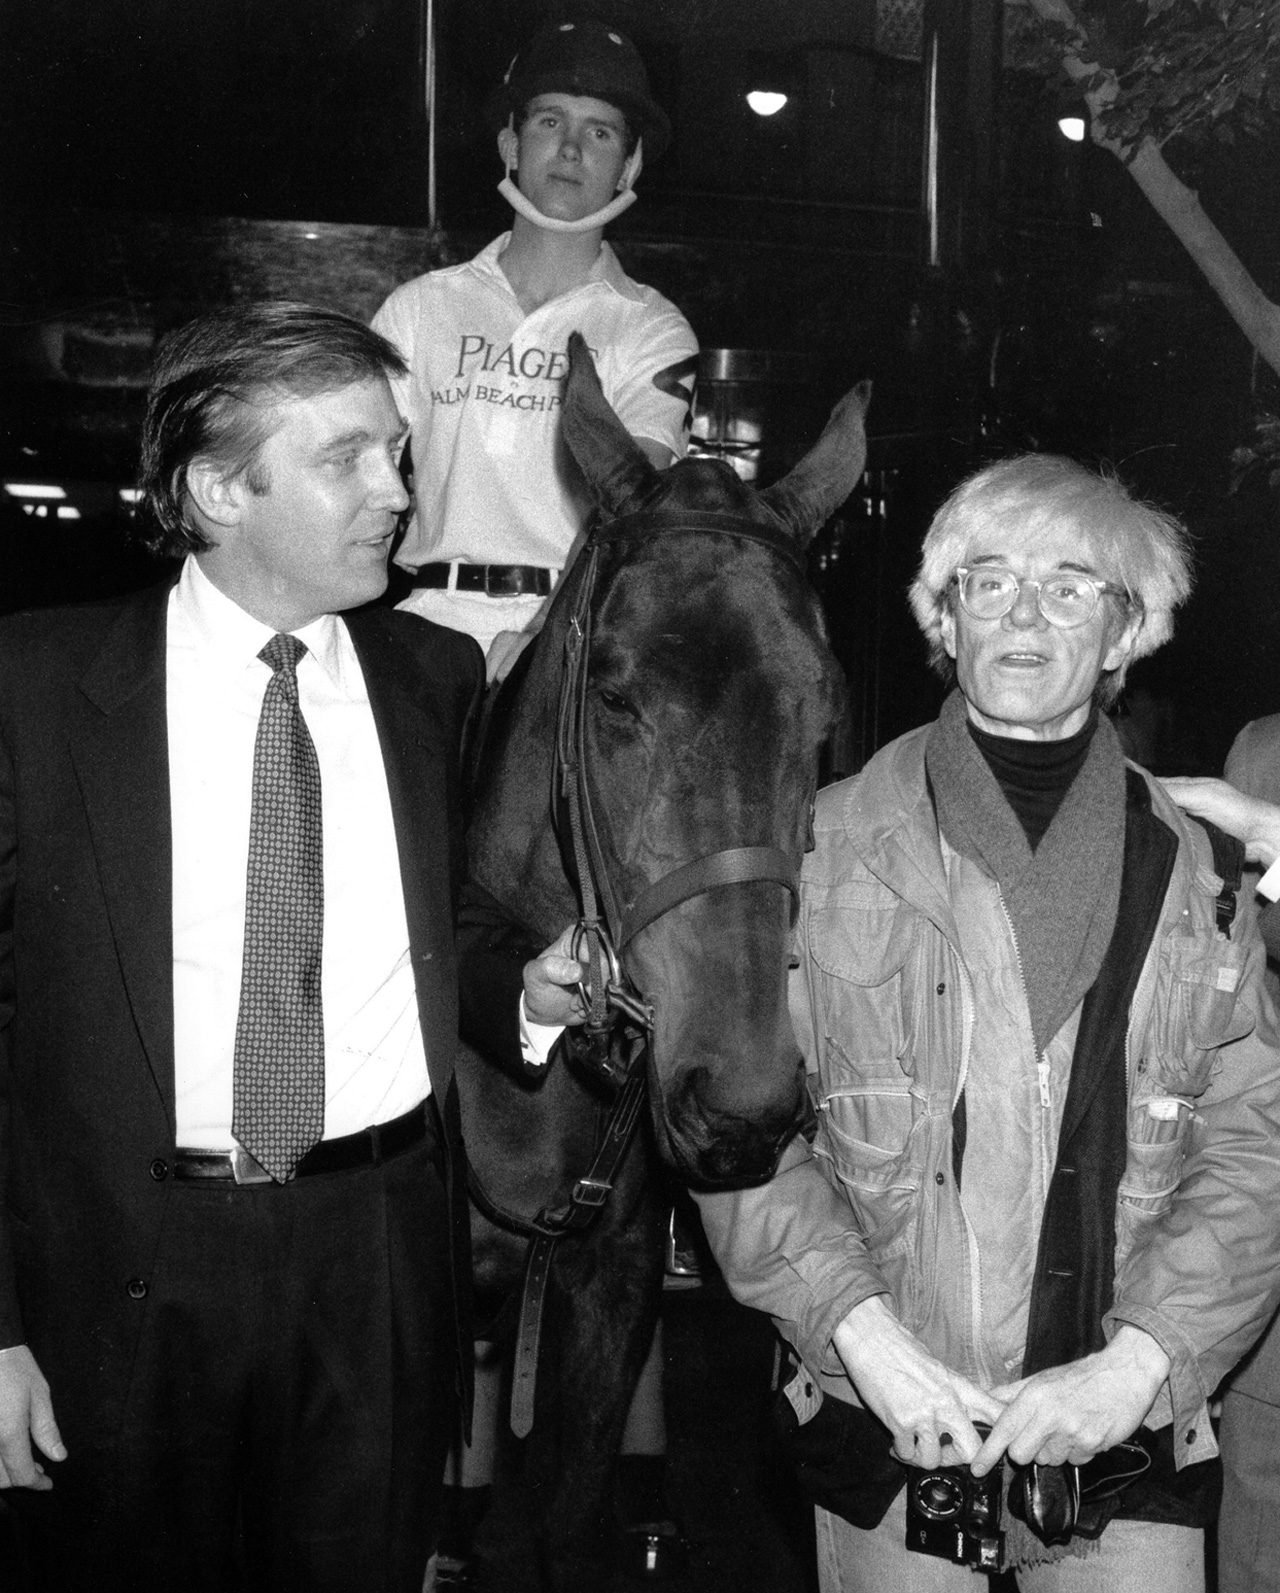 Donald Trump owner of New York's Trump Tower, holds the bridle of a polo pony while talking to Andy Warhol. Image: Mario Suriani